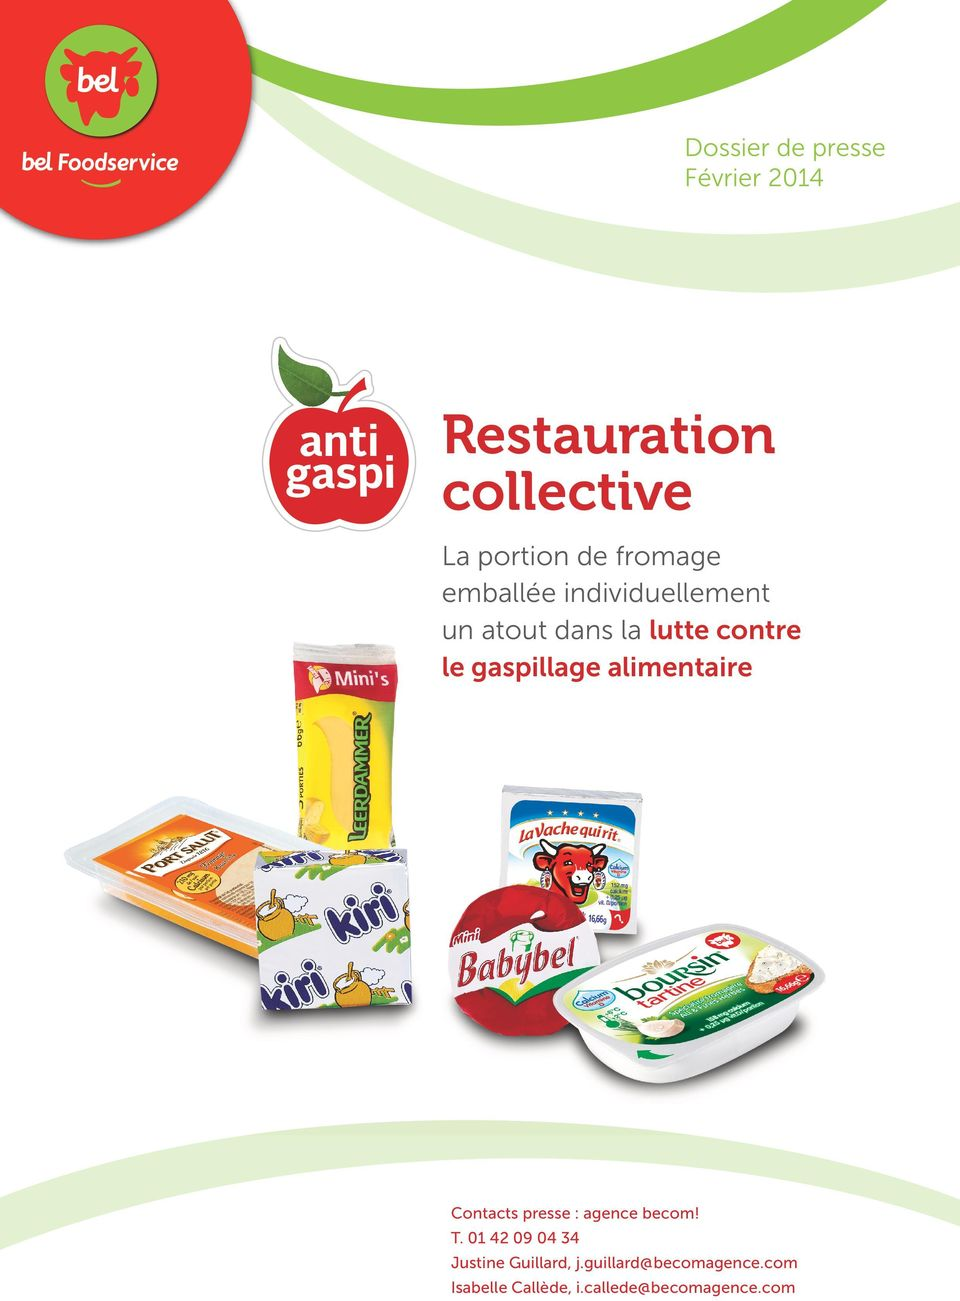 gaspillage alimentaire Contacts presse : agence becom! T.